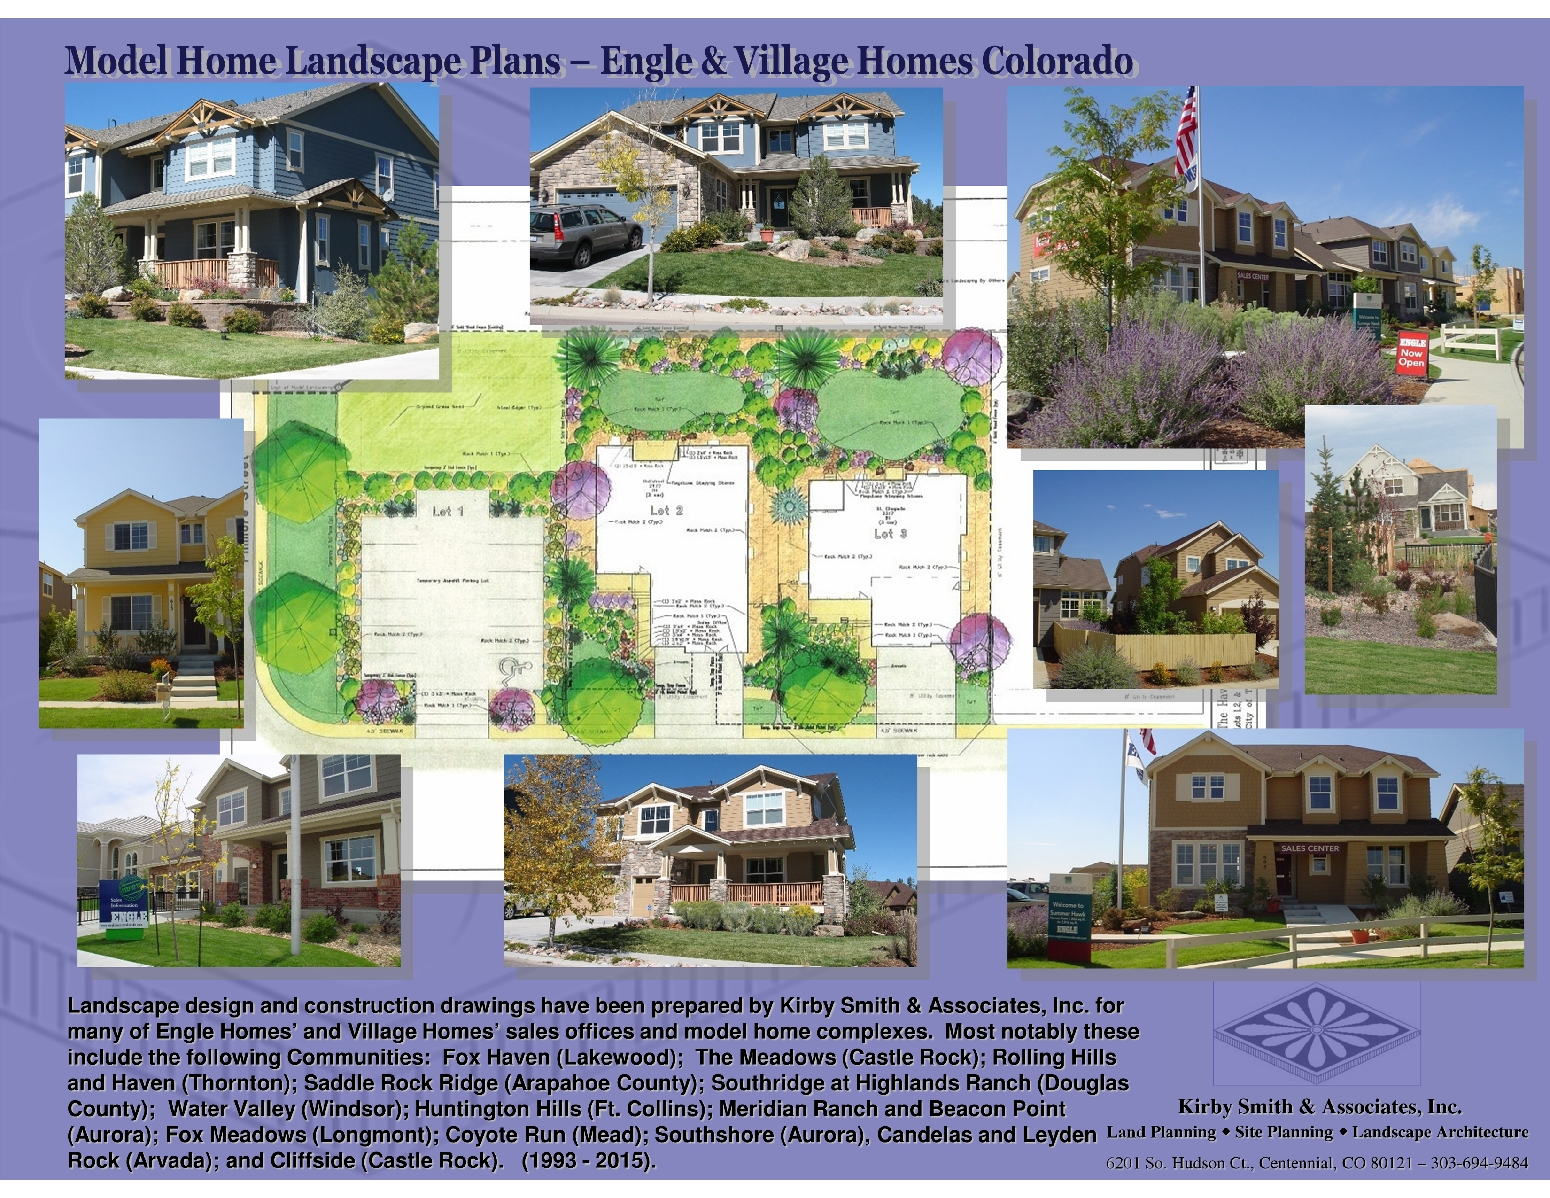 Landscape design and construction drawings have been prepared by Kirby Smith & Associates, Inc. for  many of Engle Homes' and Village Homes' sales offices and model home complexes.  Most notably these include the following Communities:  Fox Haven (Lakewood);  The Meadows (Castle Rock); Rolling Hills and Haven (Thornton); Saddle Rock Ridge (Arapahoe County); Southridge at Highlands Ranch (Douglas County);  Water Valley (Windsor); Huntington Hills (Ft. Collins); Meridian Ranch and Beacon Point (Aurora); Fox Meadows (Longmont); Coyote Run (Mead); Southshore (Aurora), Candelas and Leyden         Rock (Arvada); and Cliffside (Castle Rock).   (1993 - 2015).